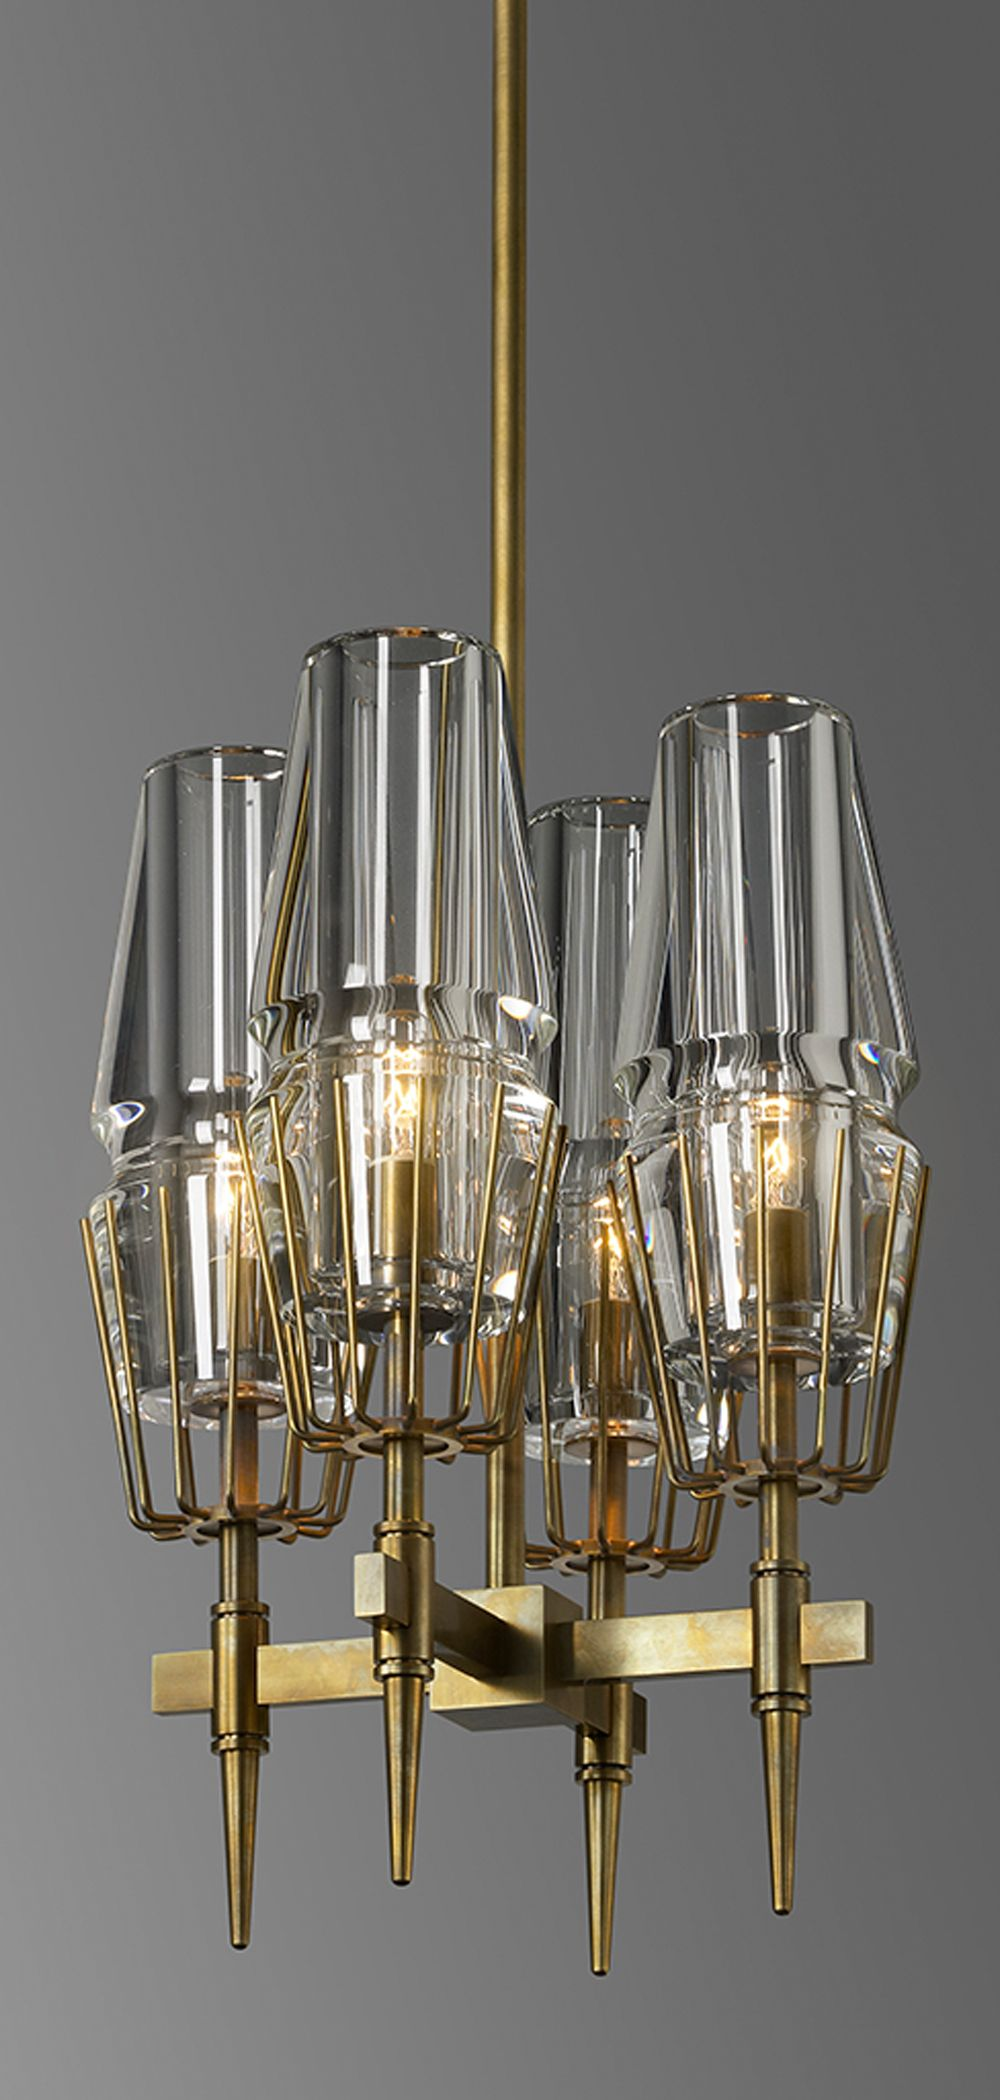 We design luxury lighting specializing in custom signature